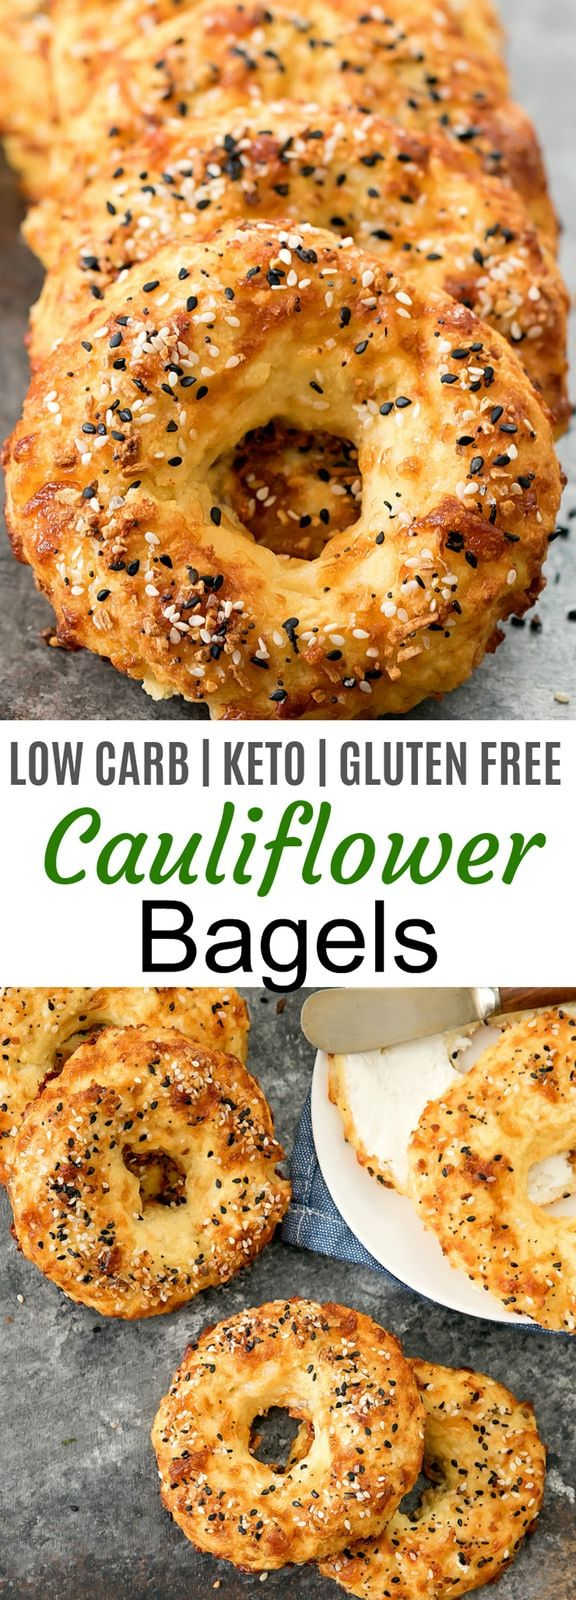 Cauliflower Bagels Recipe With Images No Carb Diets Recipes